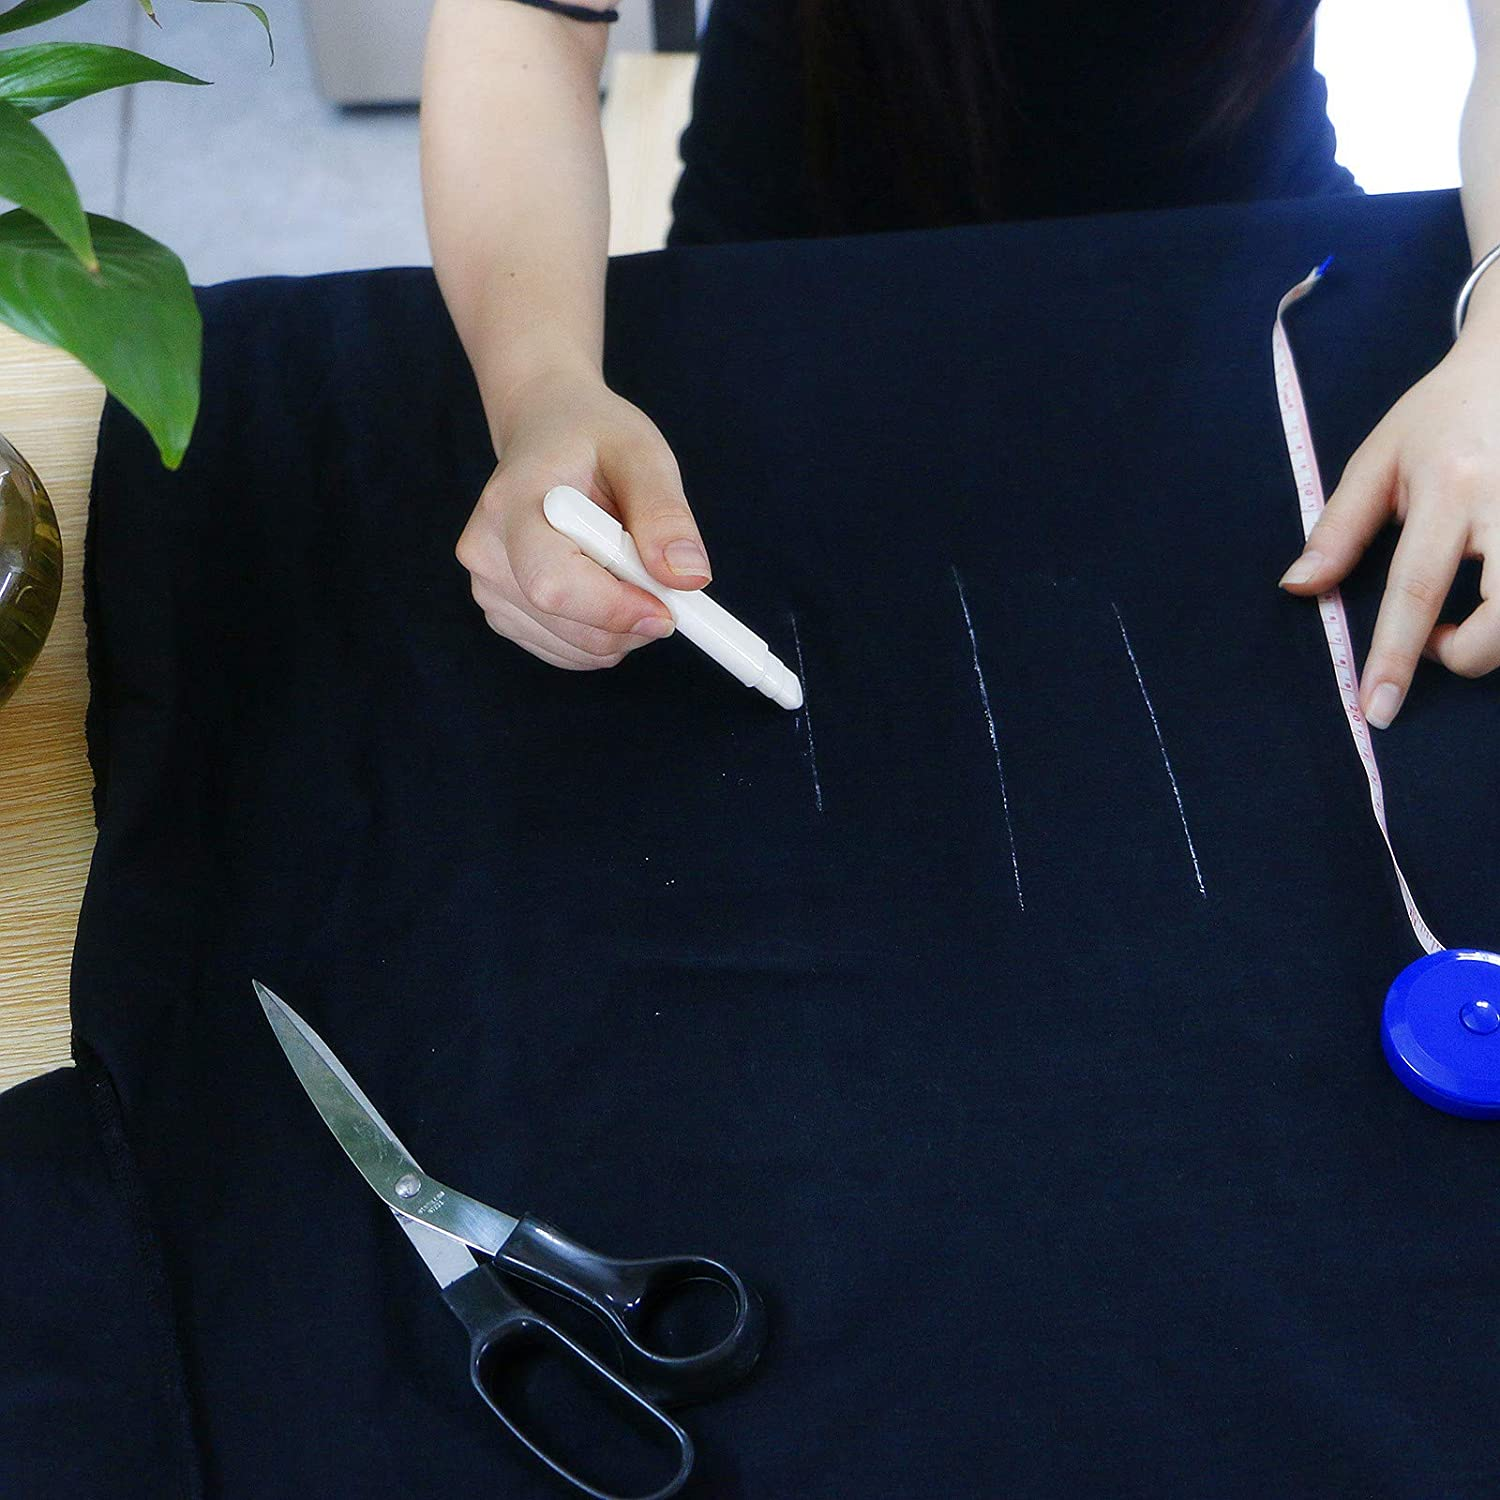 Sewing Notions /& Accessories Crafting Marking with 2 Chalk Refill Tailors Chalk Rectangle Tailors Wheel Fabric Marker Chalk Pencils Chalks for Tailoring White